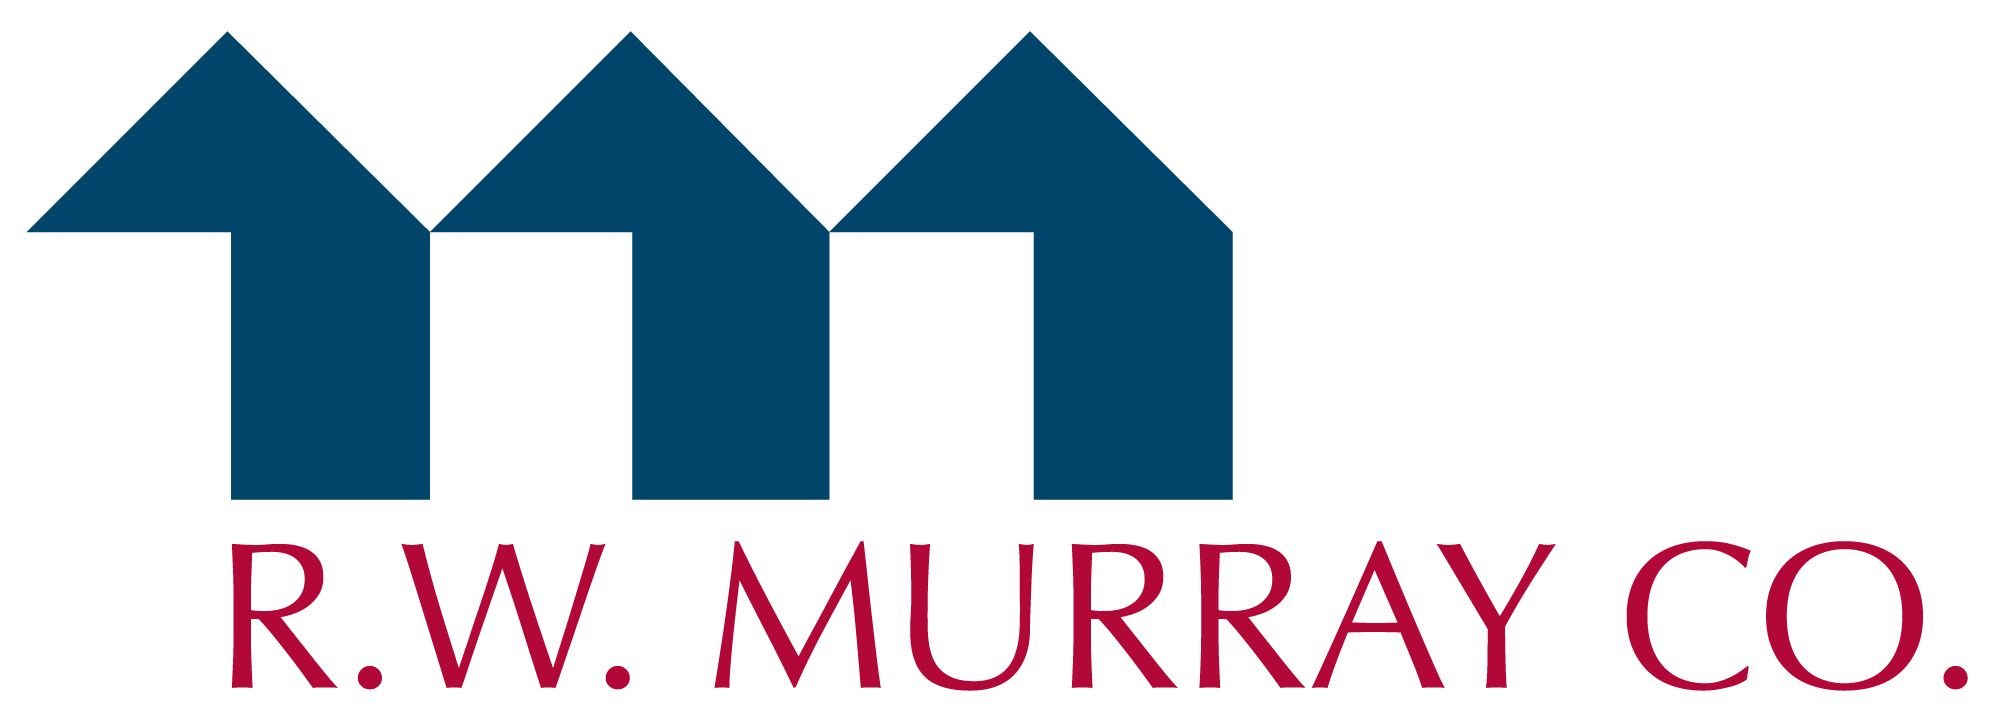 R.W. Murray Co. Announces 2010 Employee Customer Service Awards